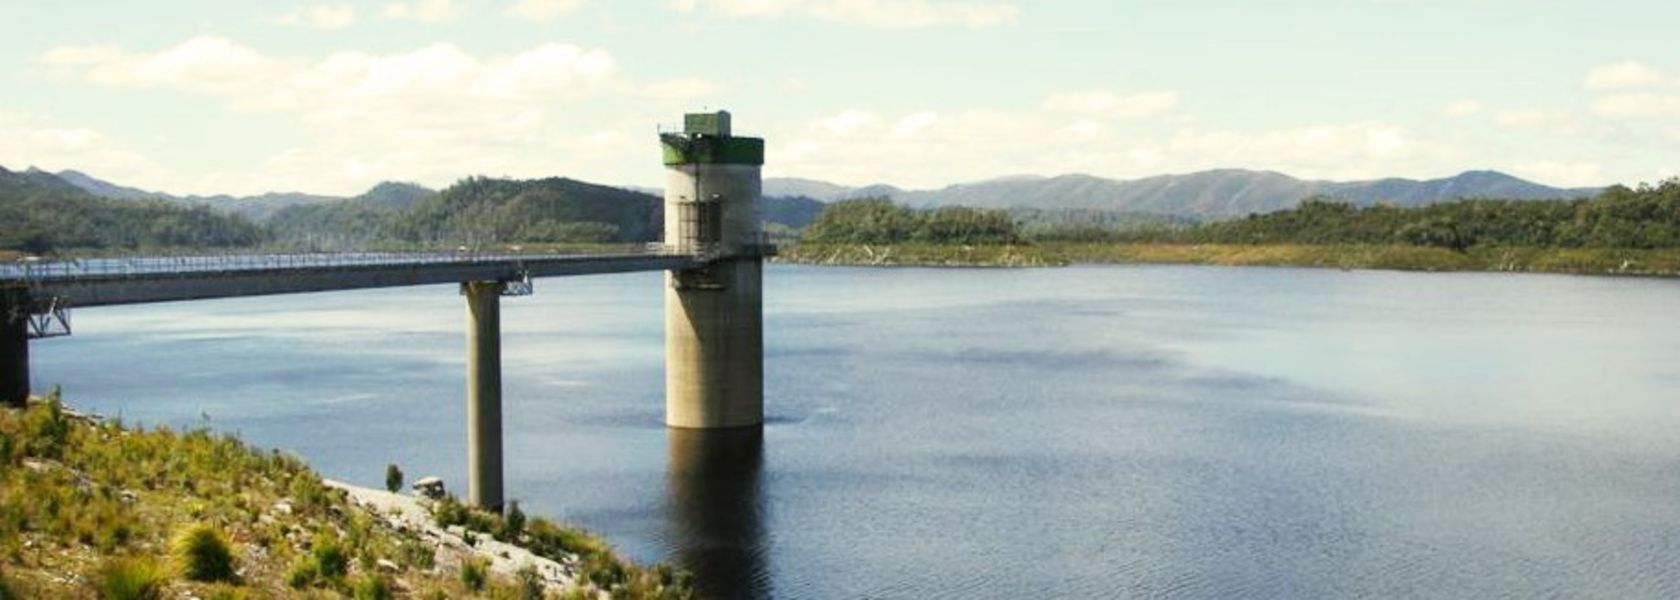 Tasmania's 200% renewables target to be legislated by year's end